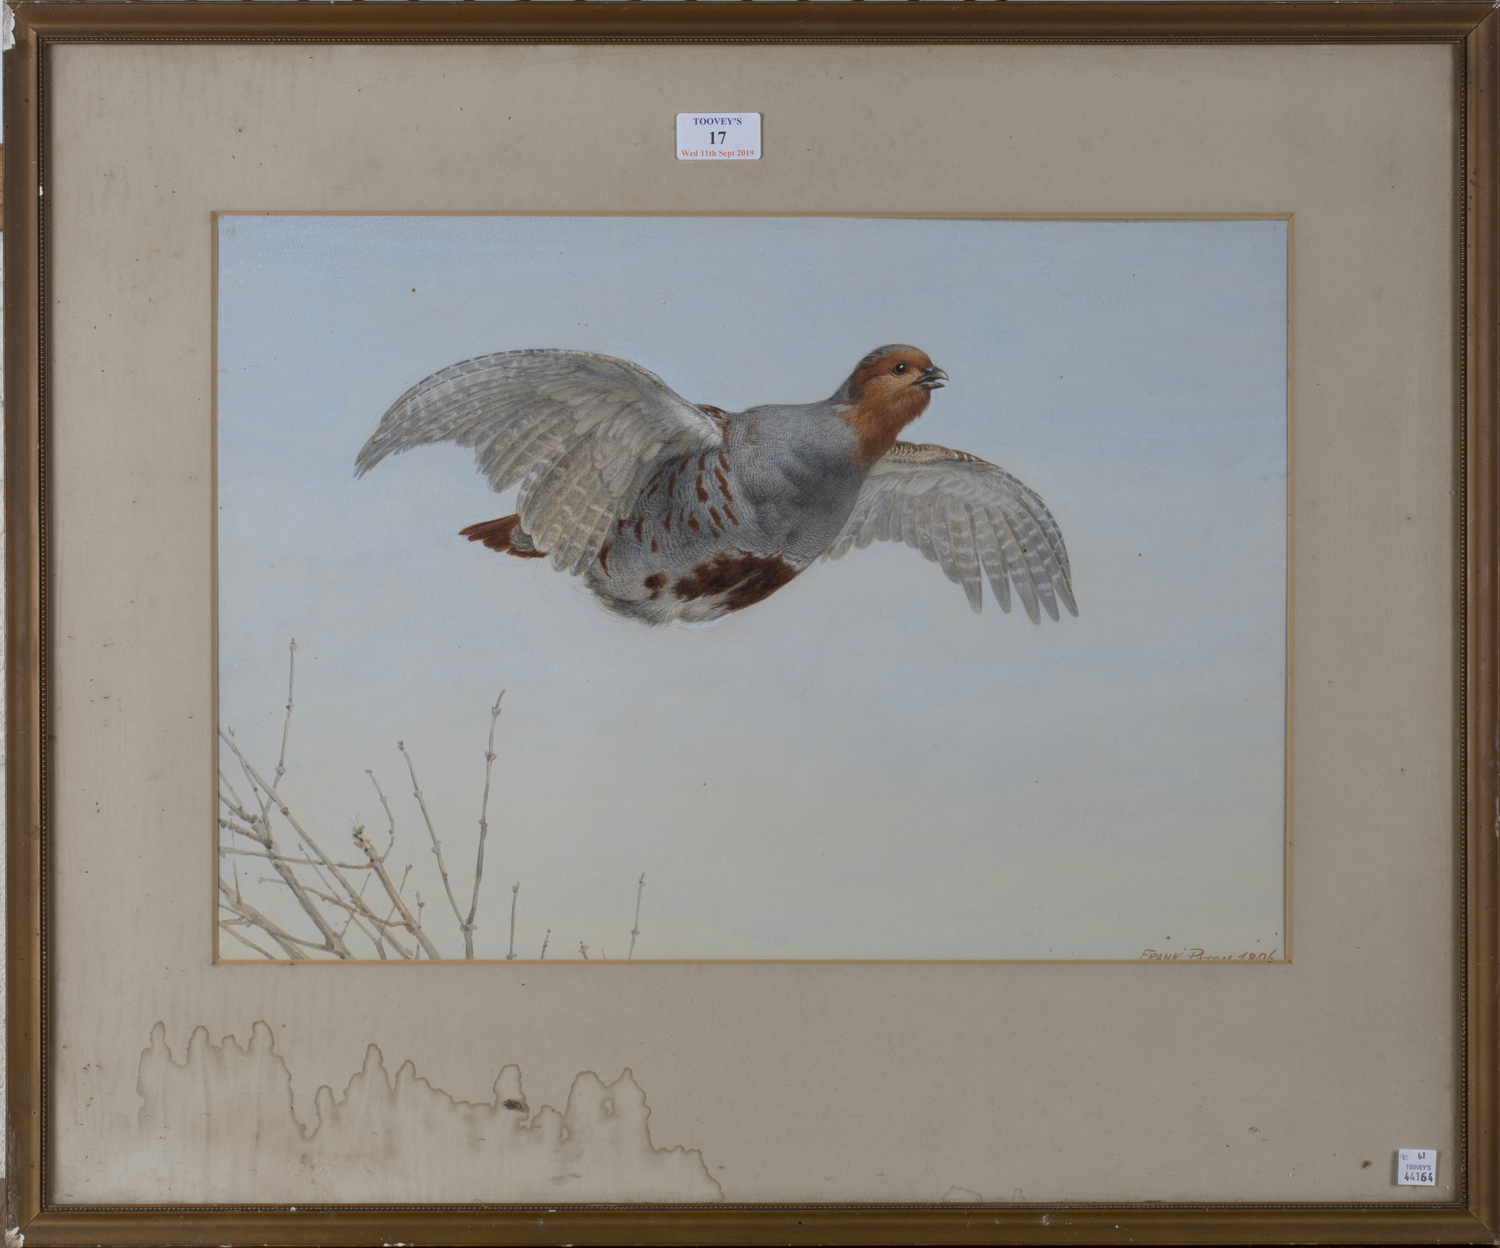 Lot 17 - Frank Paton - Partridge in Flight, late 19th century watercolour, signed and dated 1896, 34cm x 48.